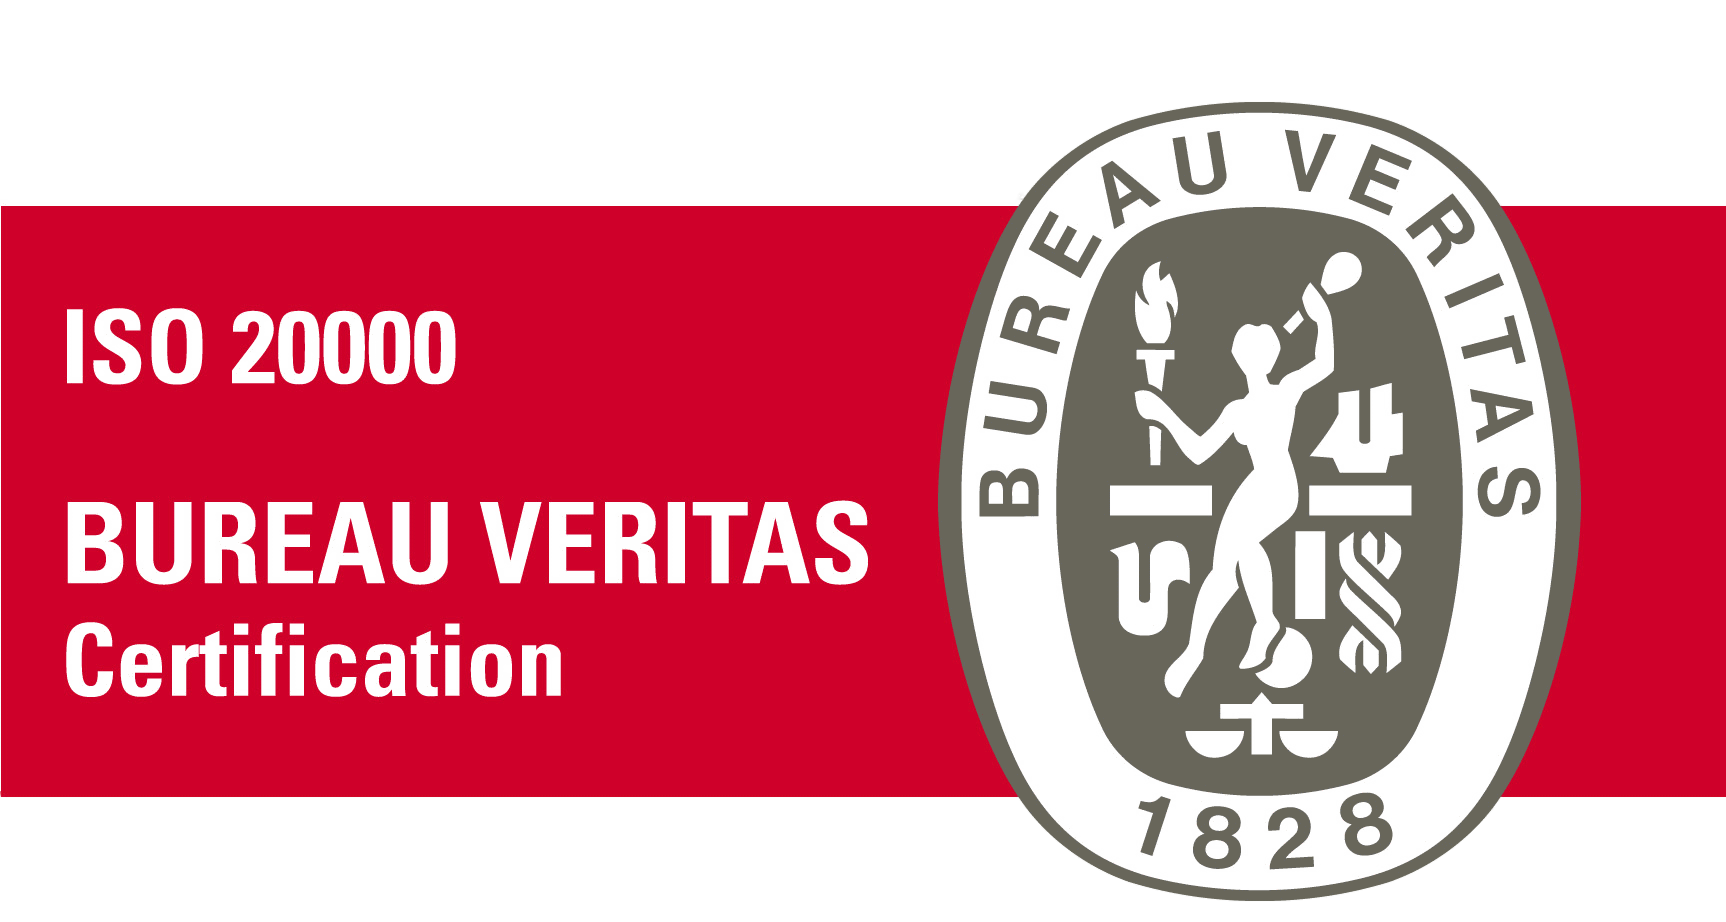 BVCertificationISO20000clippedrev1